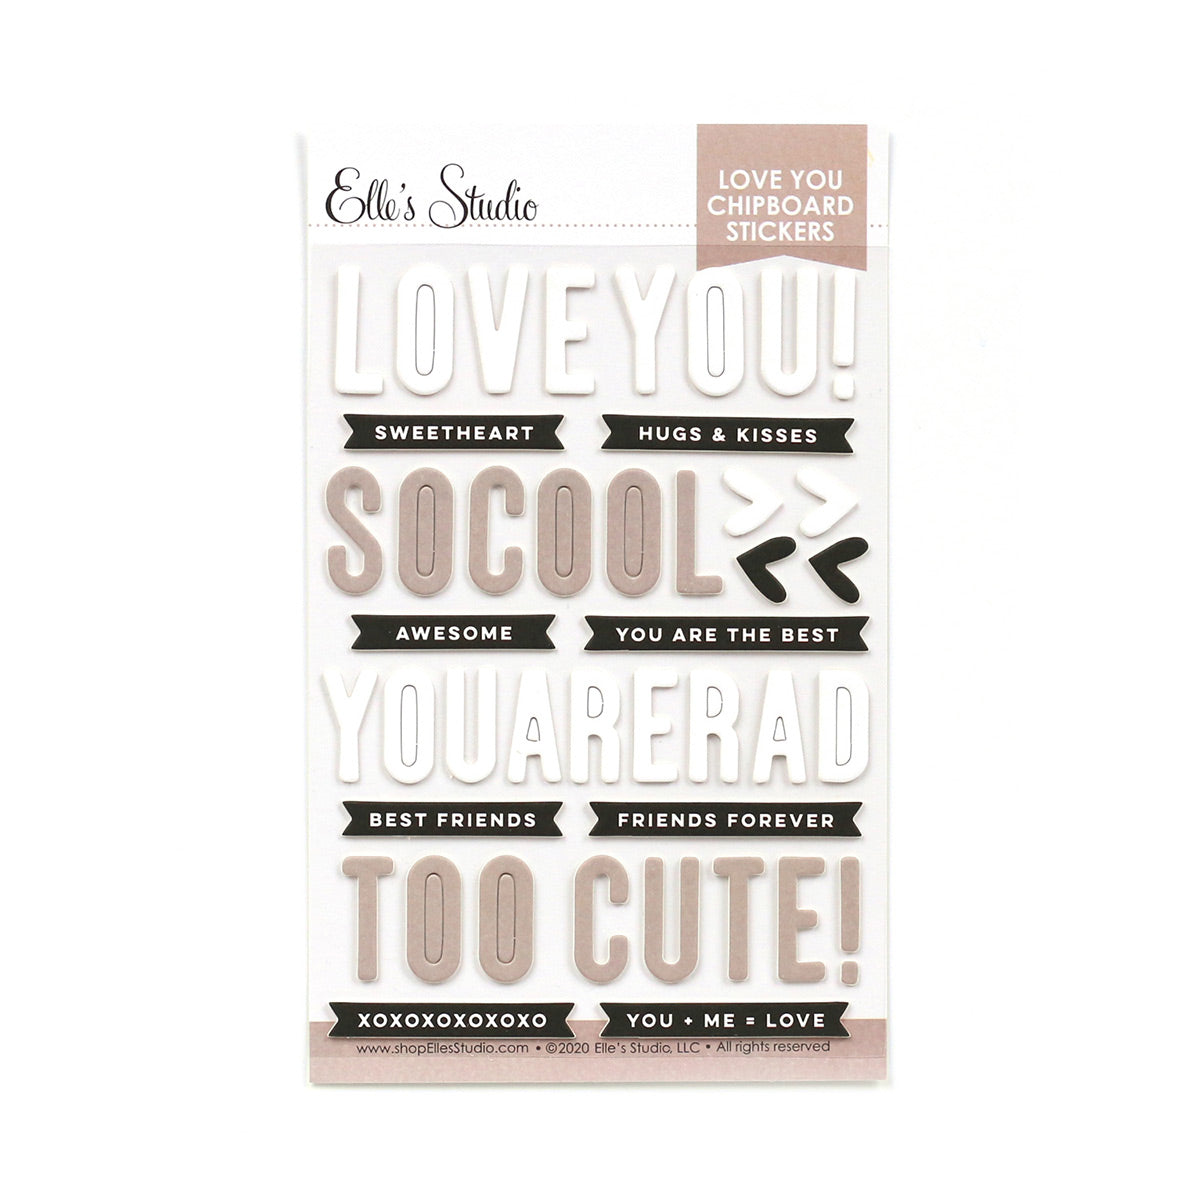 Elles-Studio-January-2021-Love-You-Chipboard-Stickers.jpg?v=1609370284